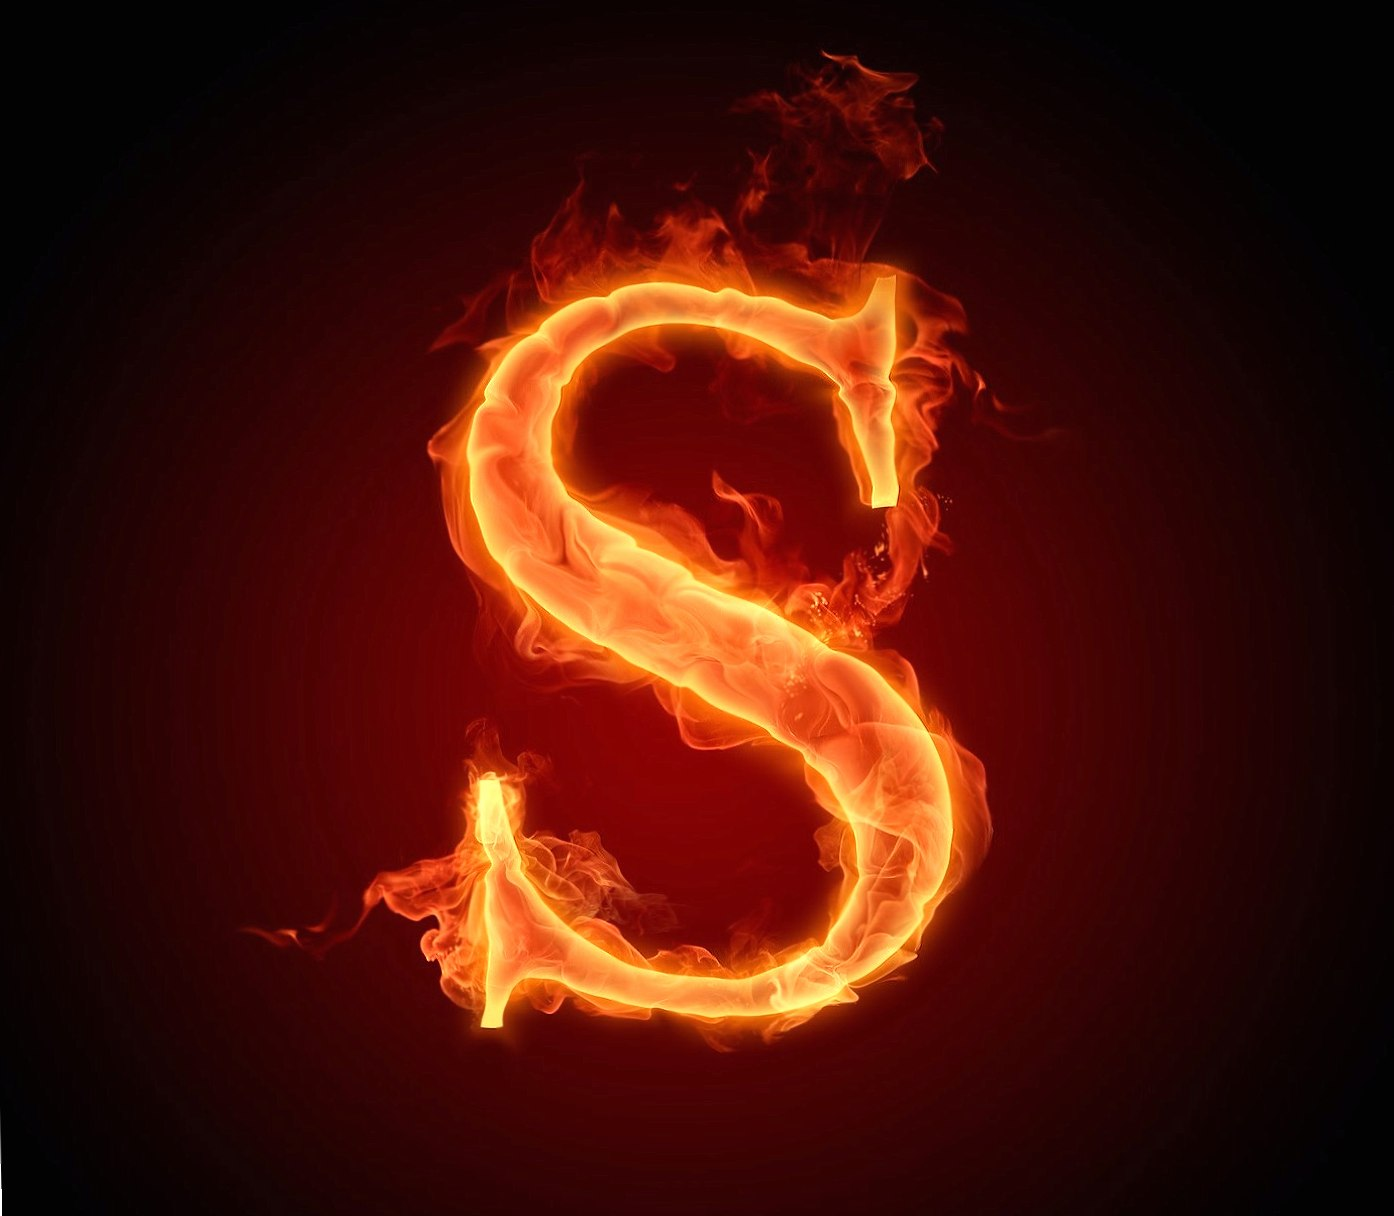 Letter S In Fire Hd wallpapers HD quality